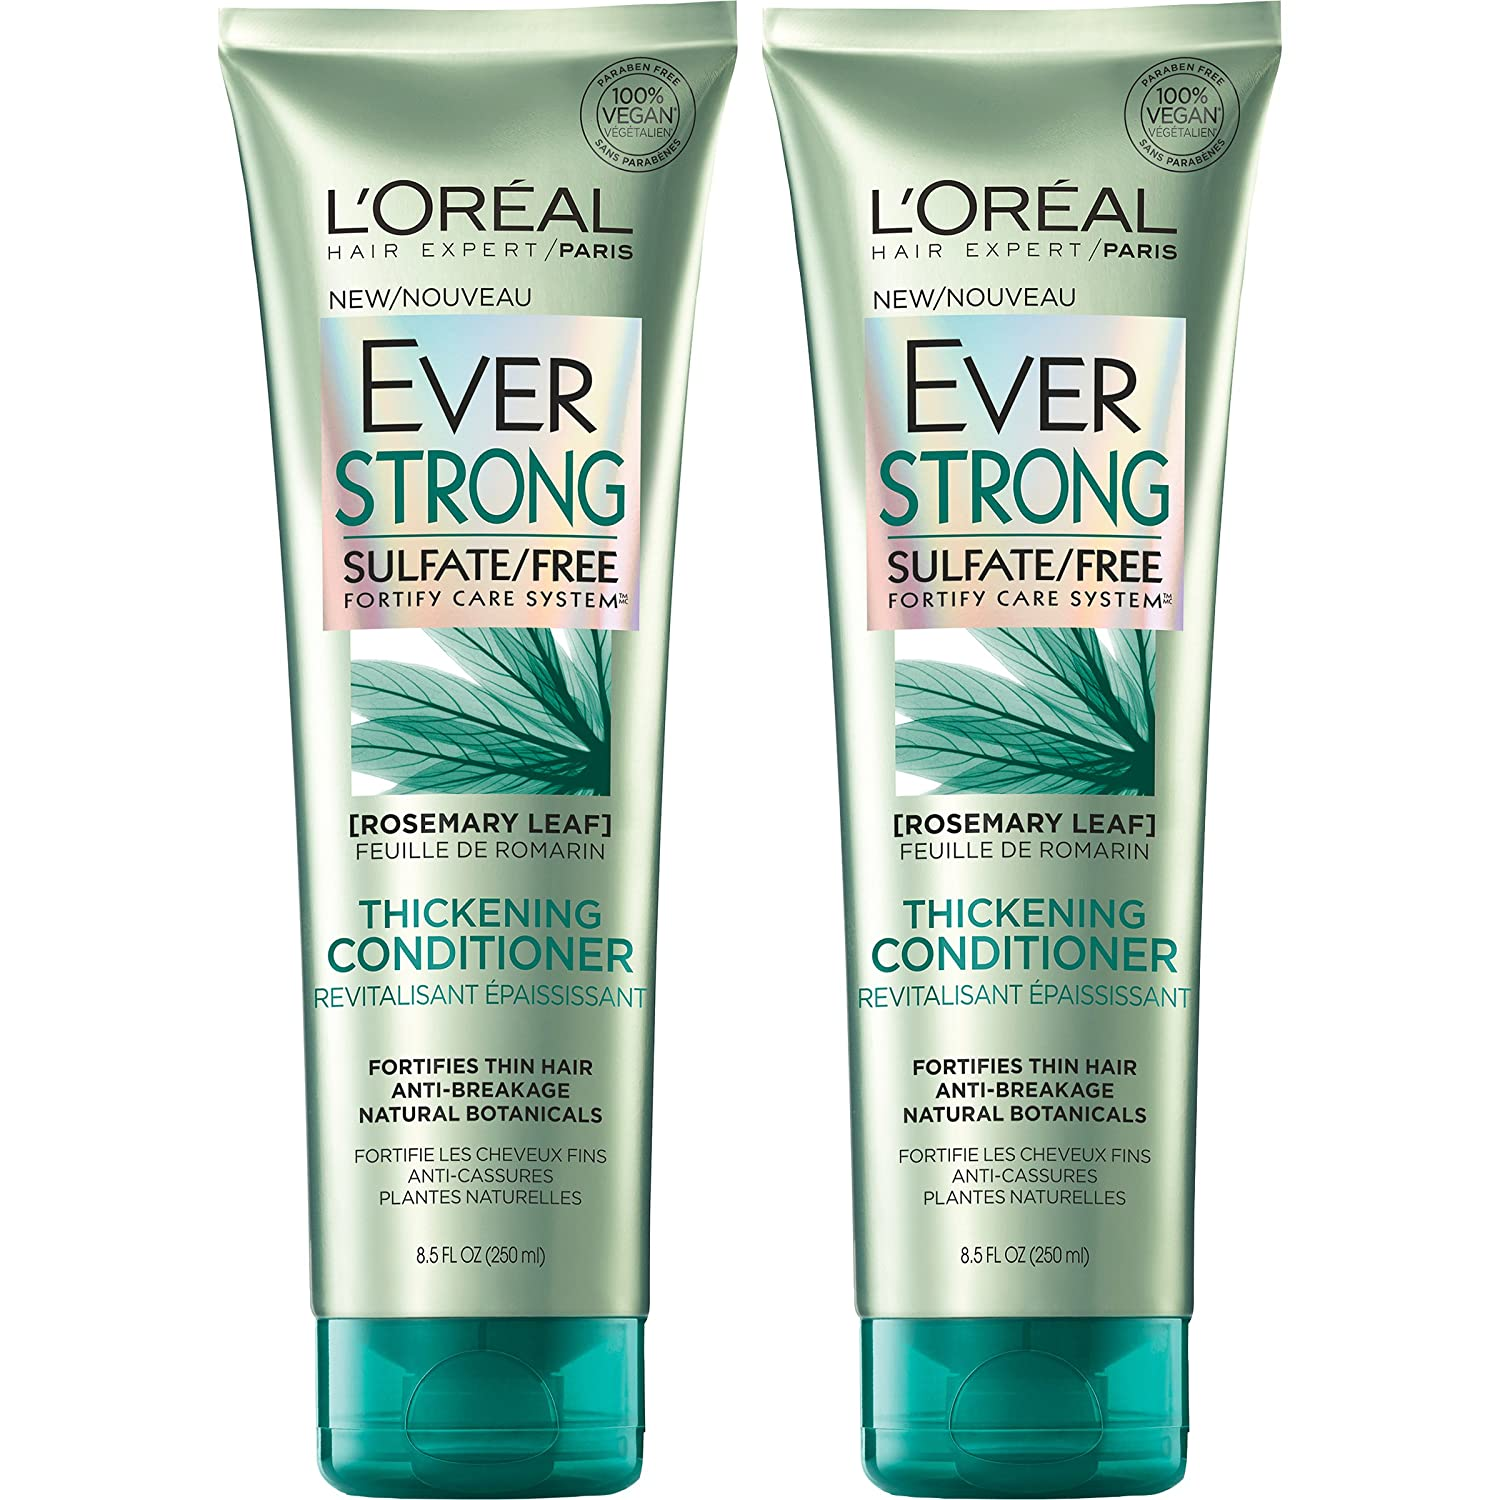 L'Oréal Paris Hair Care EverStrong Sulfate Free Thickening Conditioner, with Rosemary Leaf, 2 Count (8.5 Fl. Oz each)